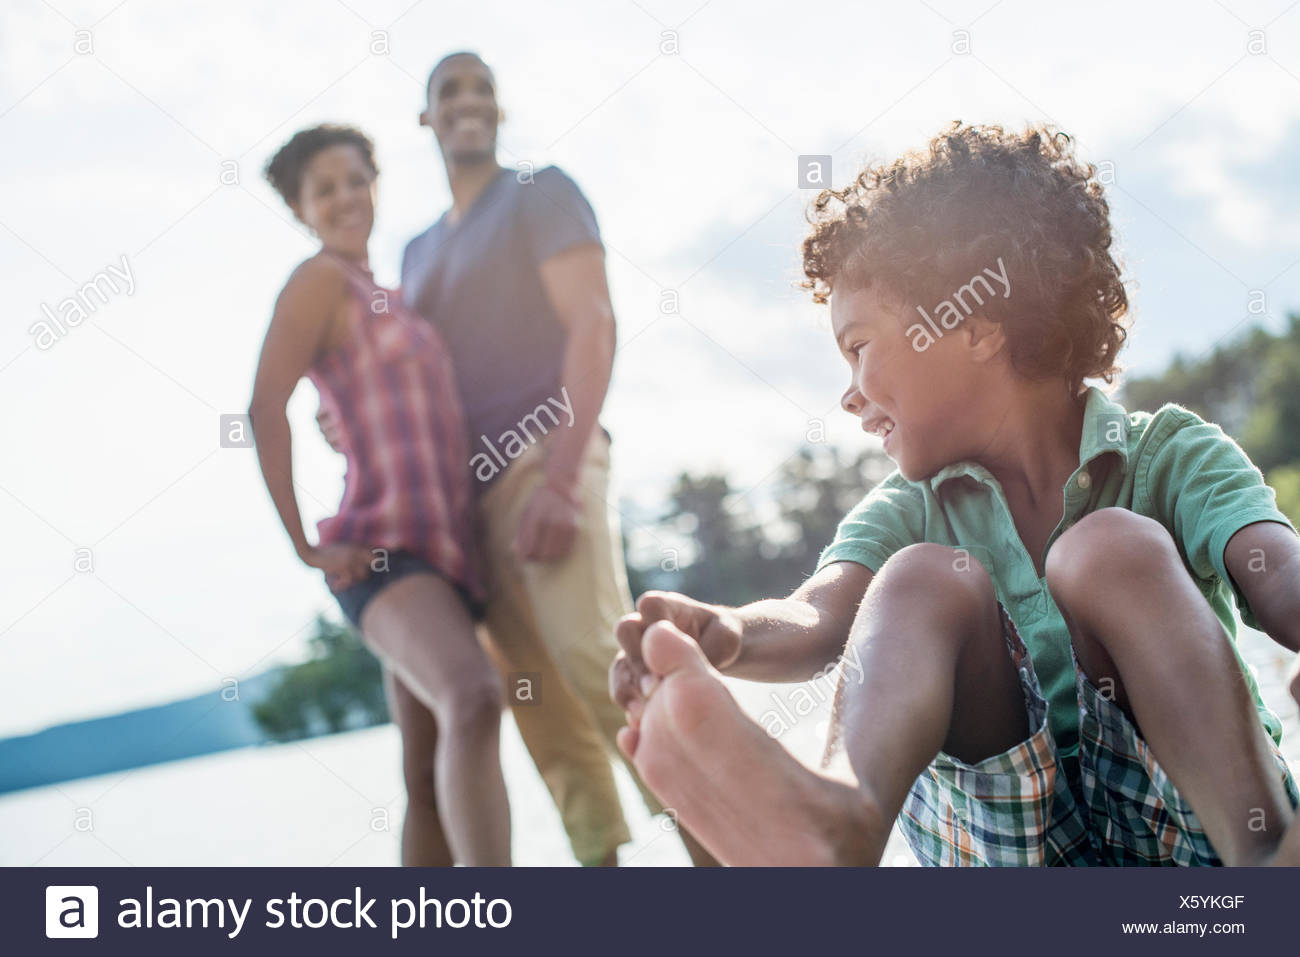 A family, parents and son by a lake in summer. - Stock Image